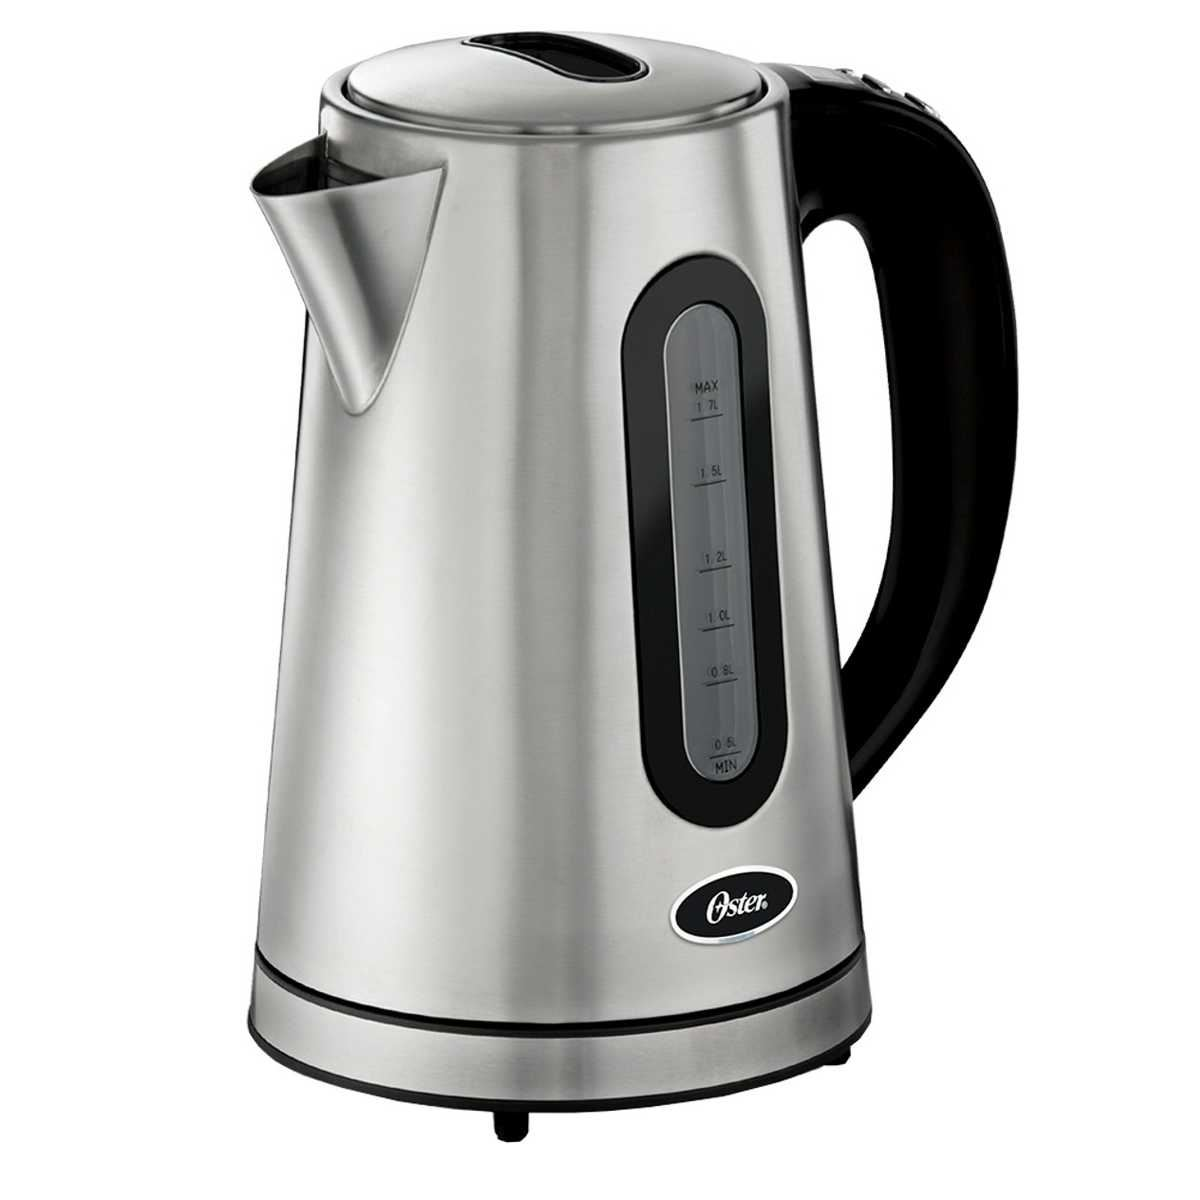 Picture of Oster Electric Kettle 5970